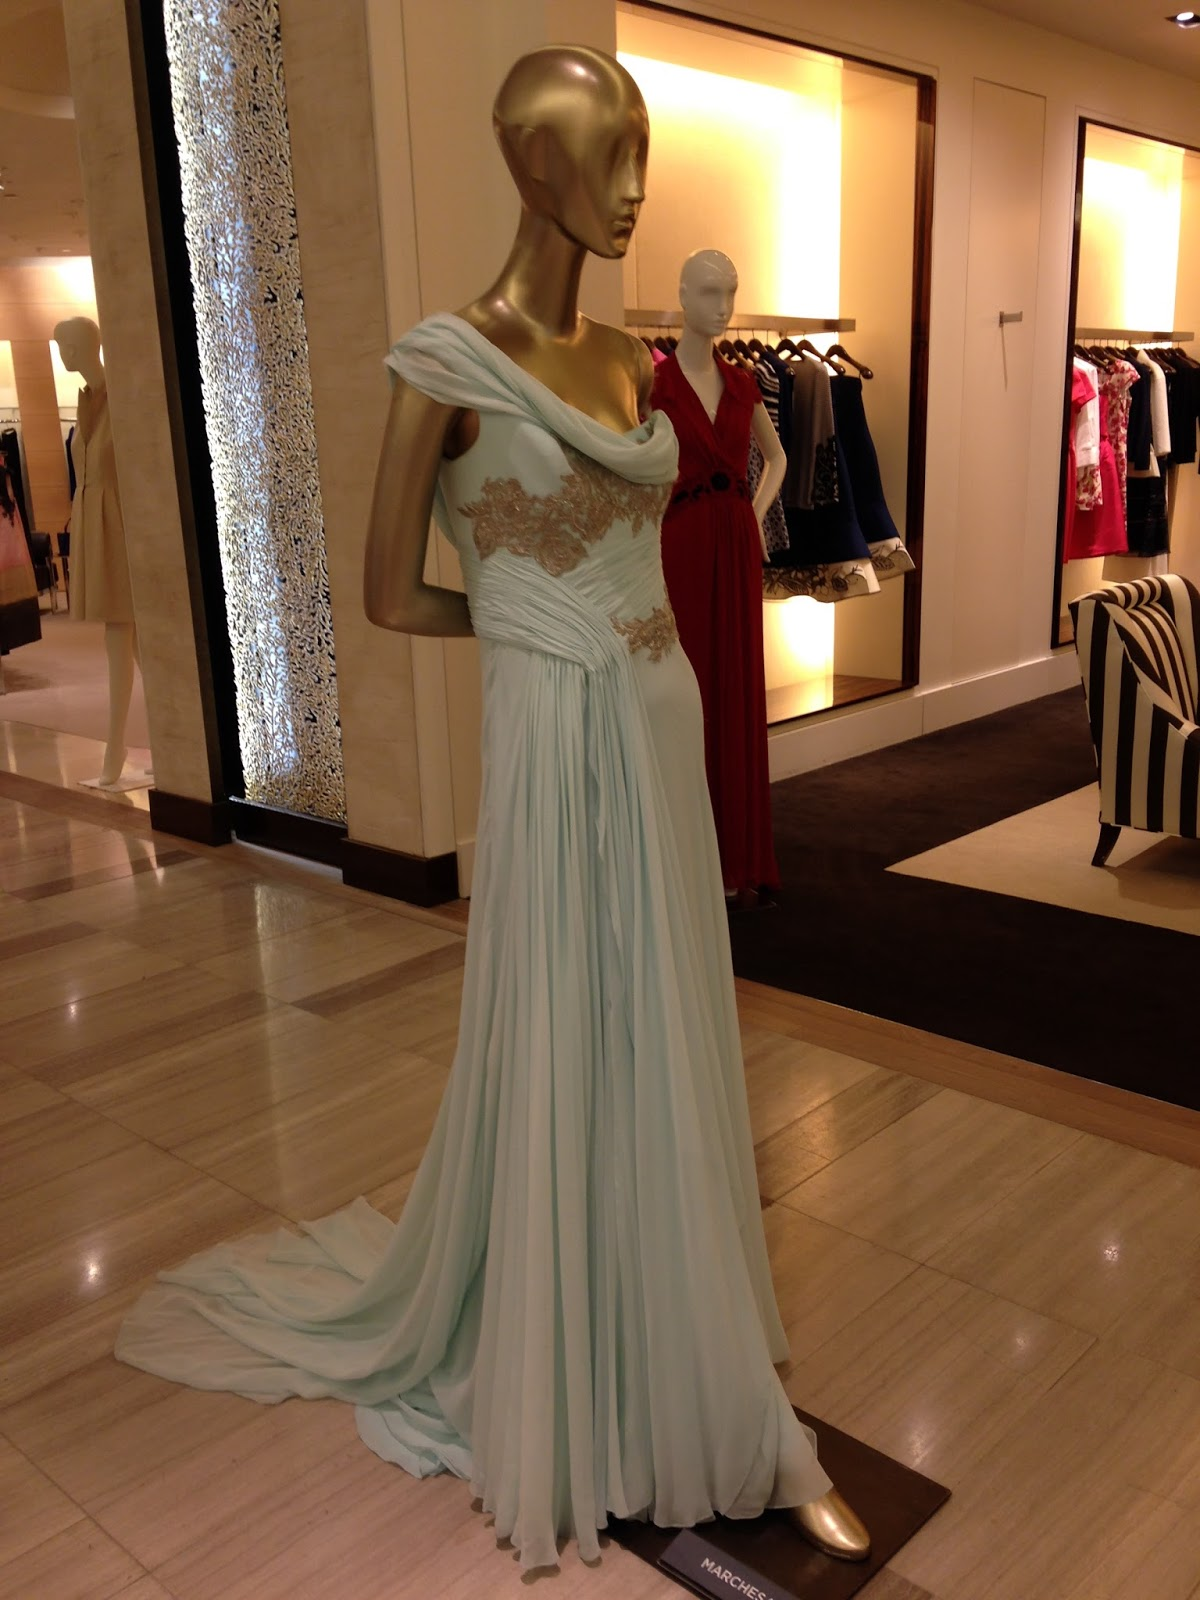 Evening Wear Collections At Saks Fifth Avenue One Style At A Time